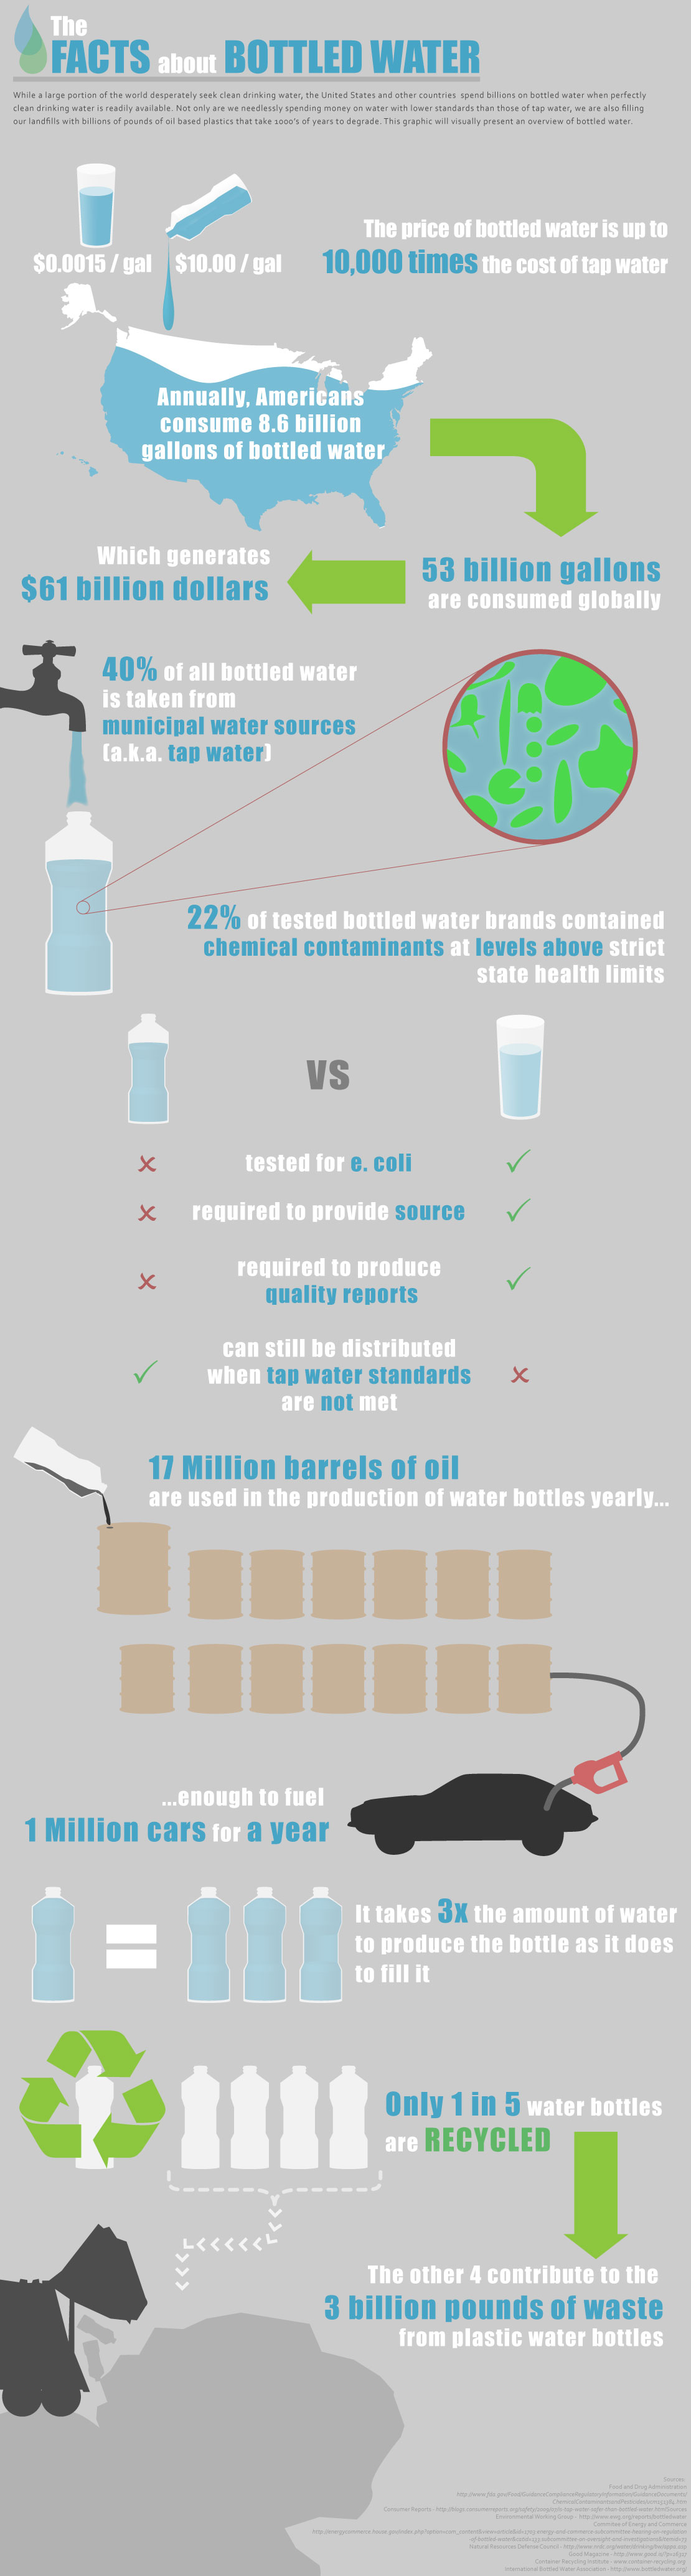 Bottle Water Facts